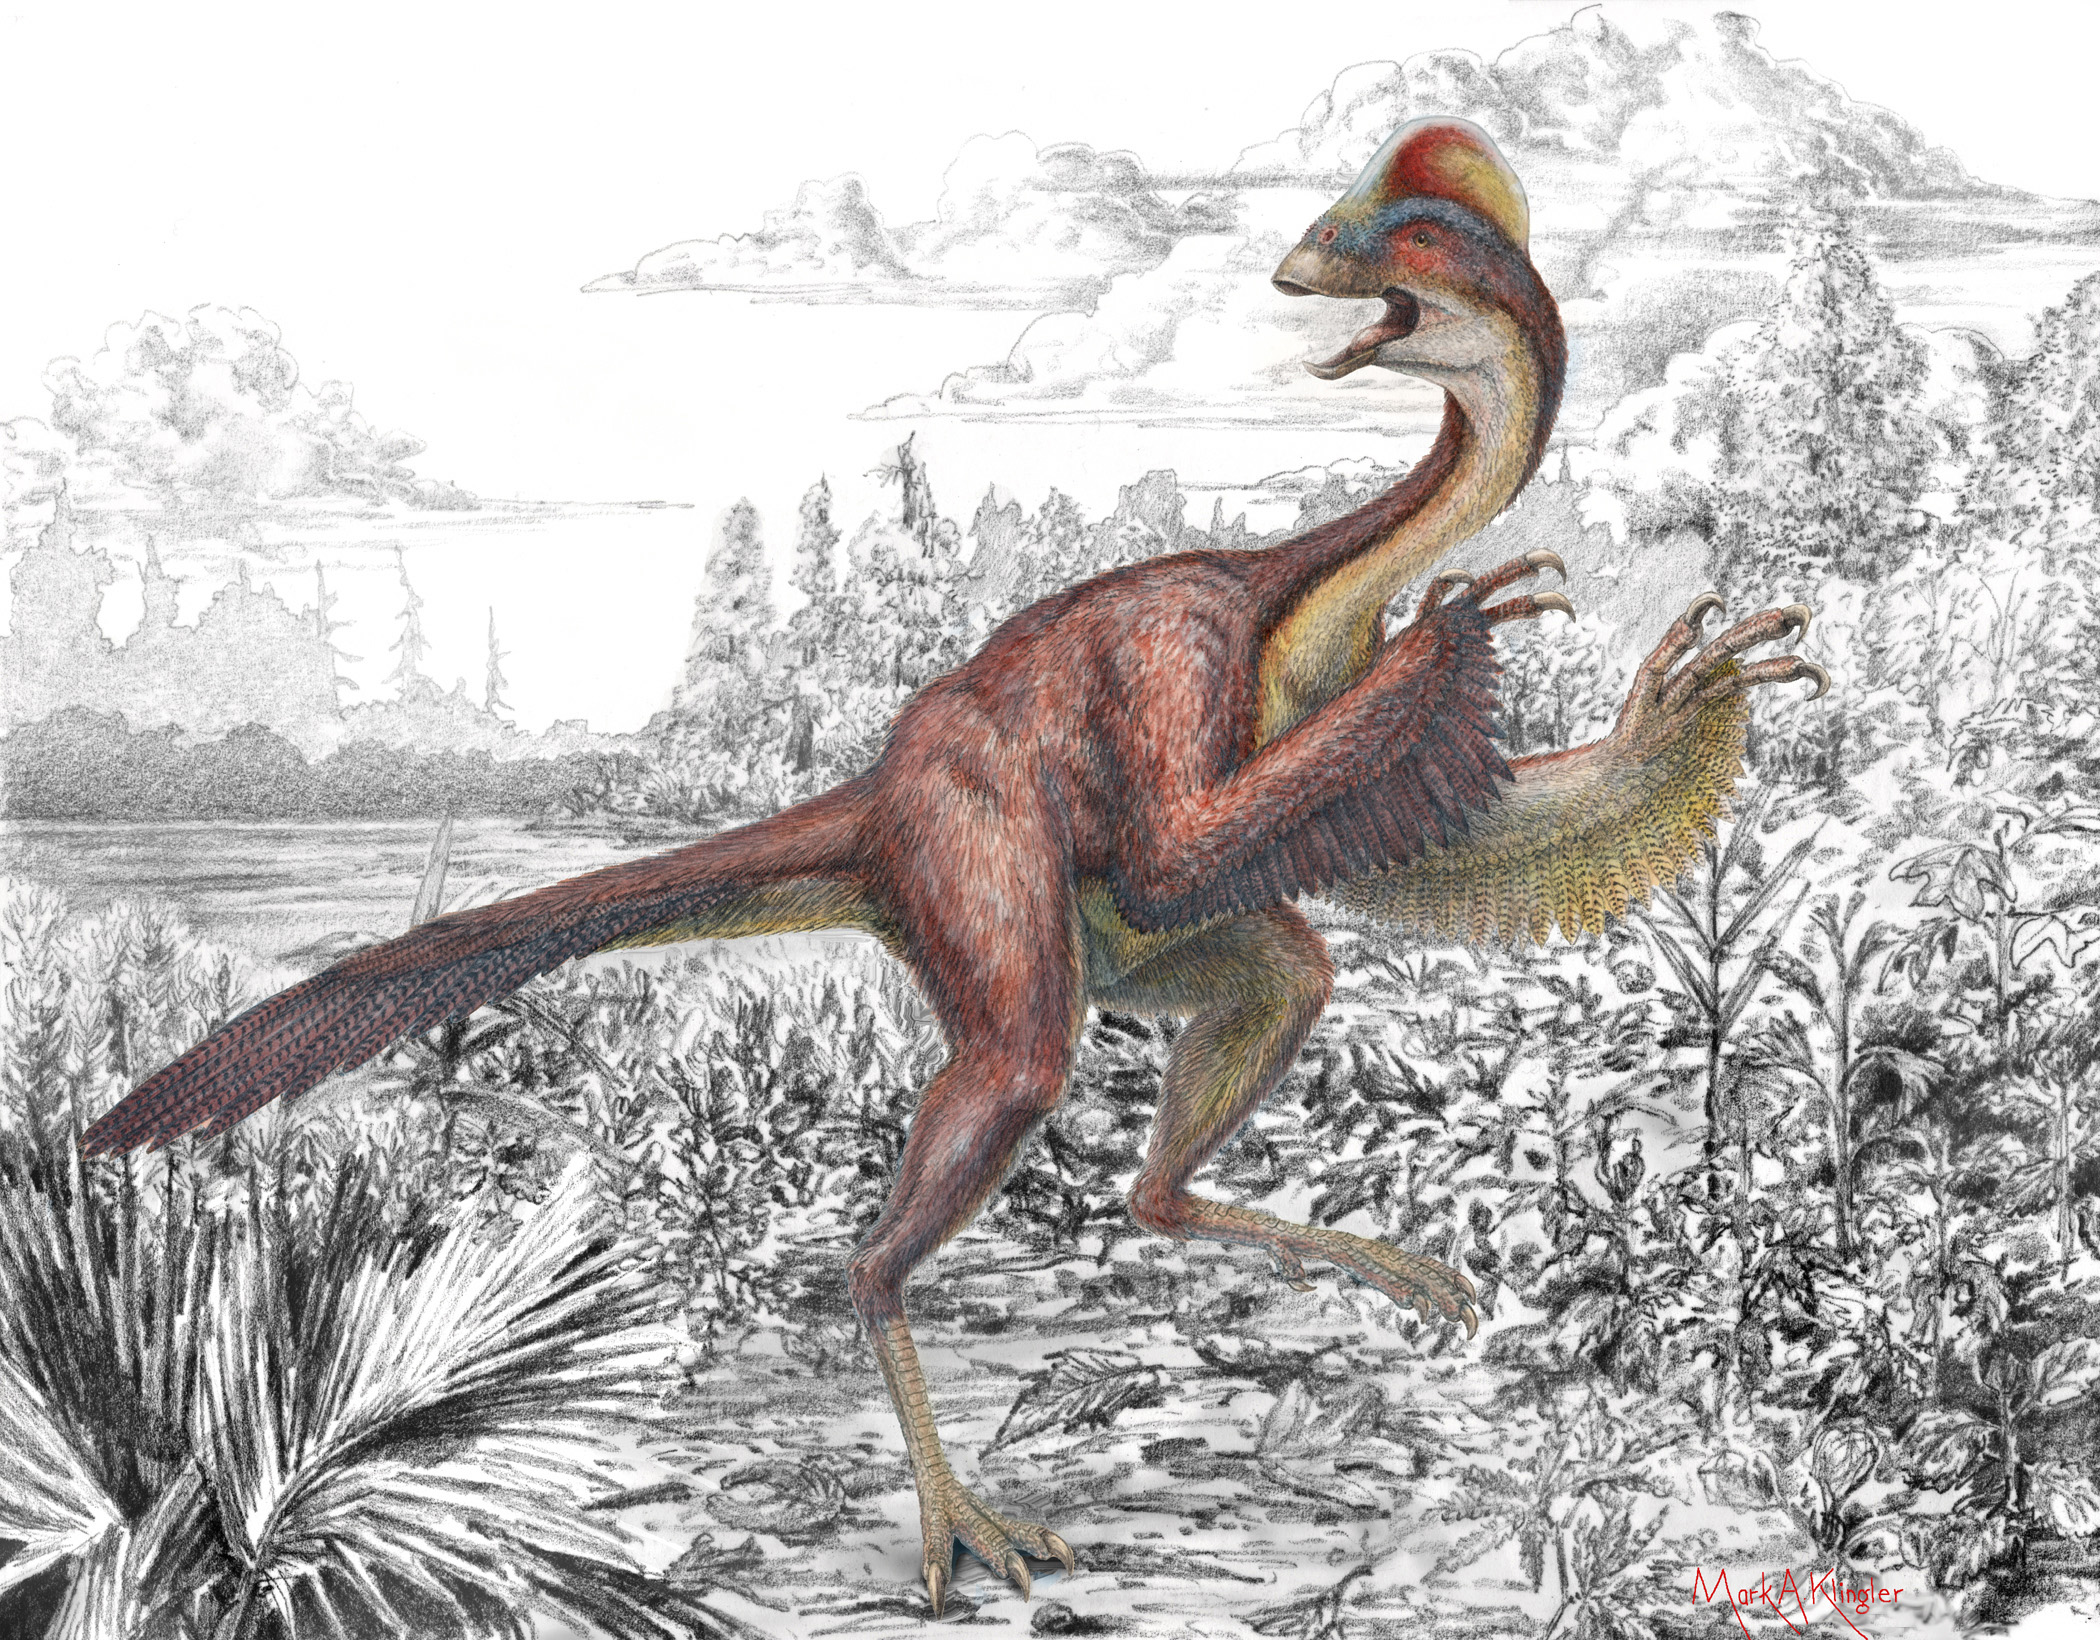 ... dinosaur: Large feathered dinosaur species discovered in North America New Animal Discovered 2014